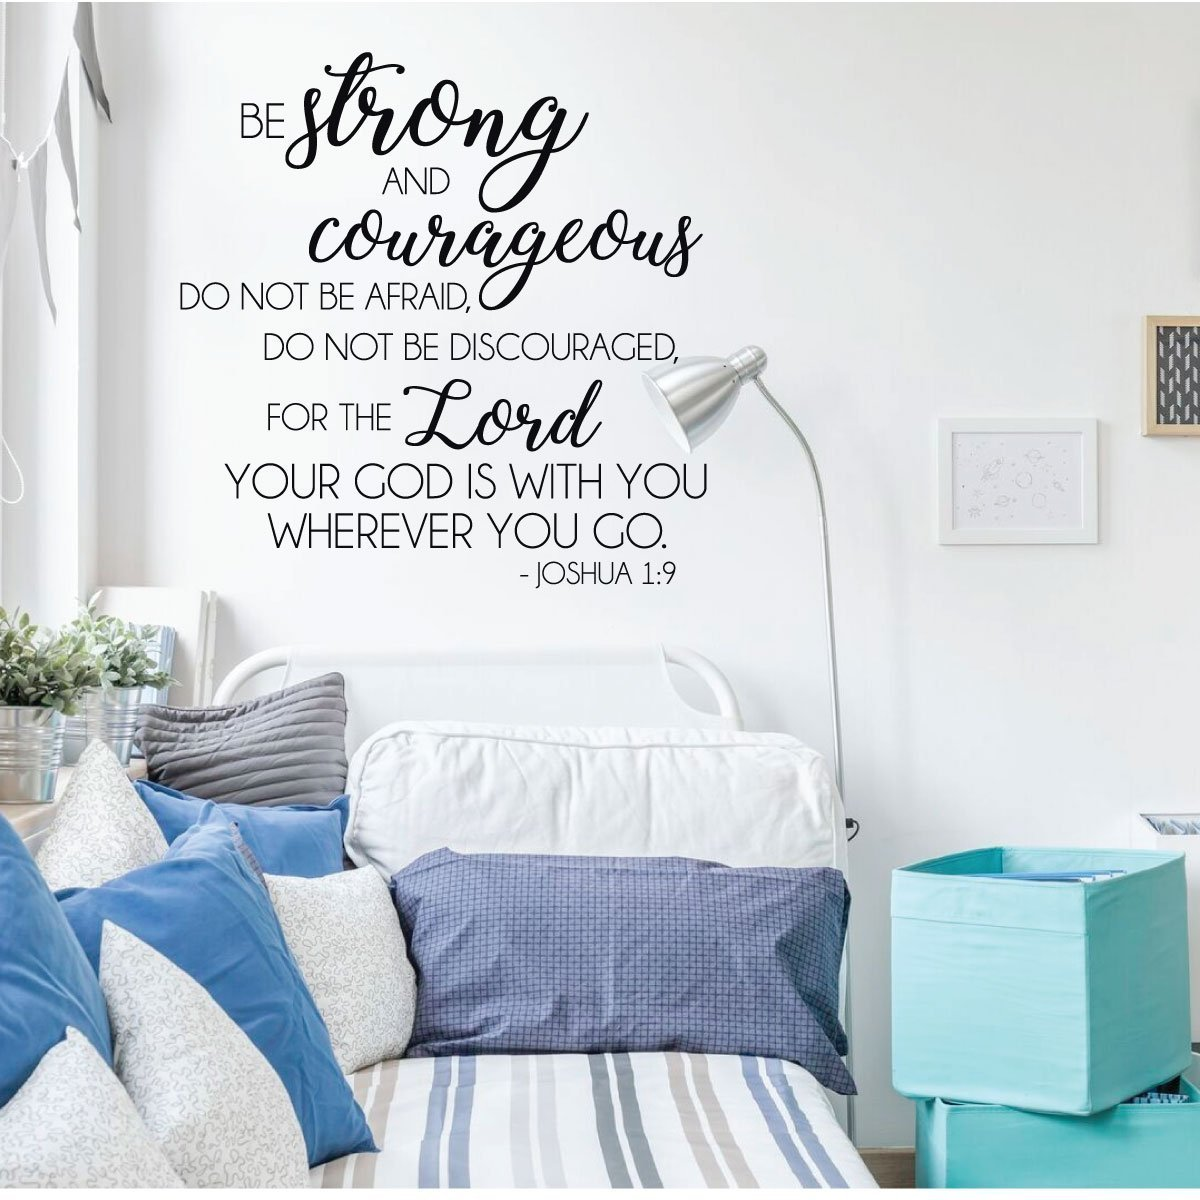 Christian Wall Decal   Bible Verse Wall Decal   Joshua 1:9   Be Strong ...